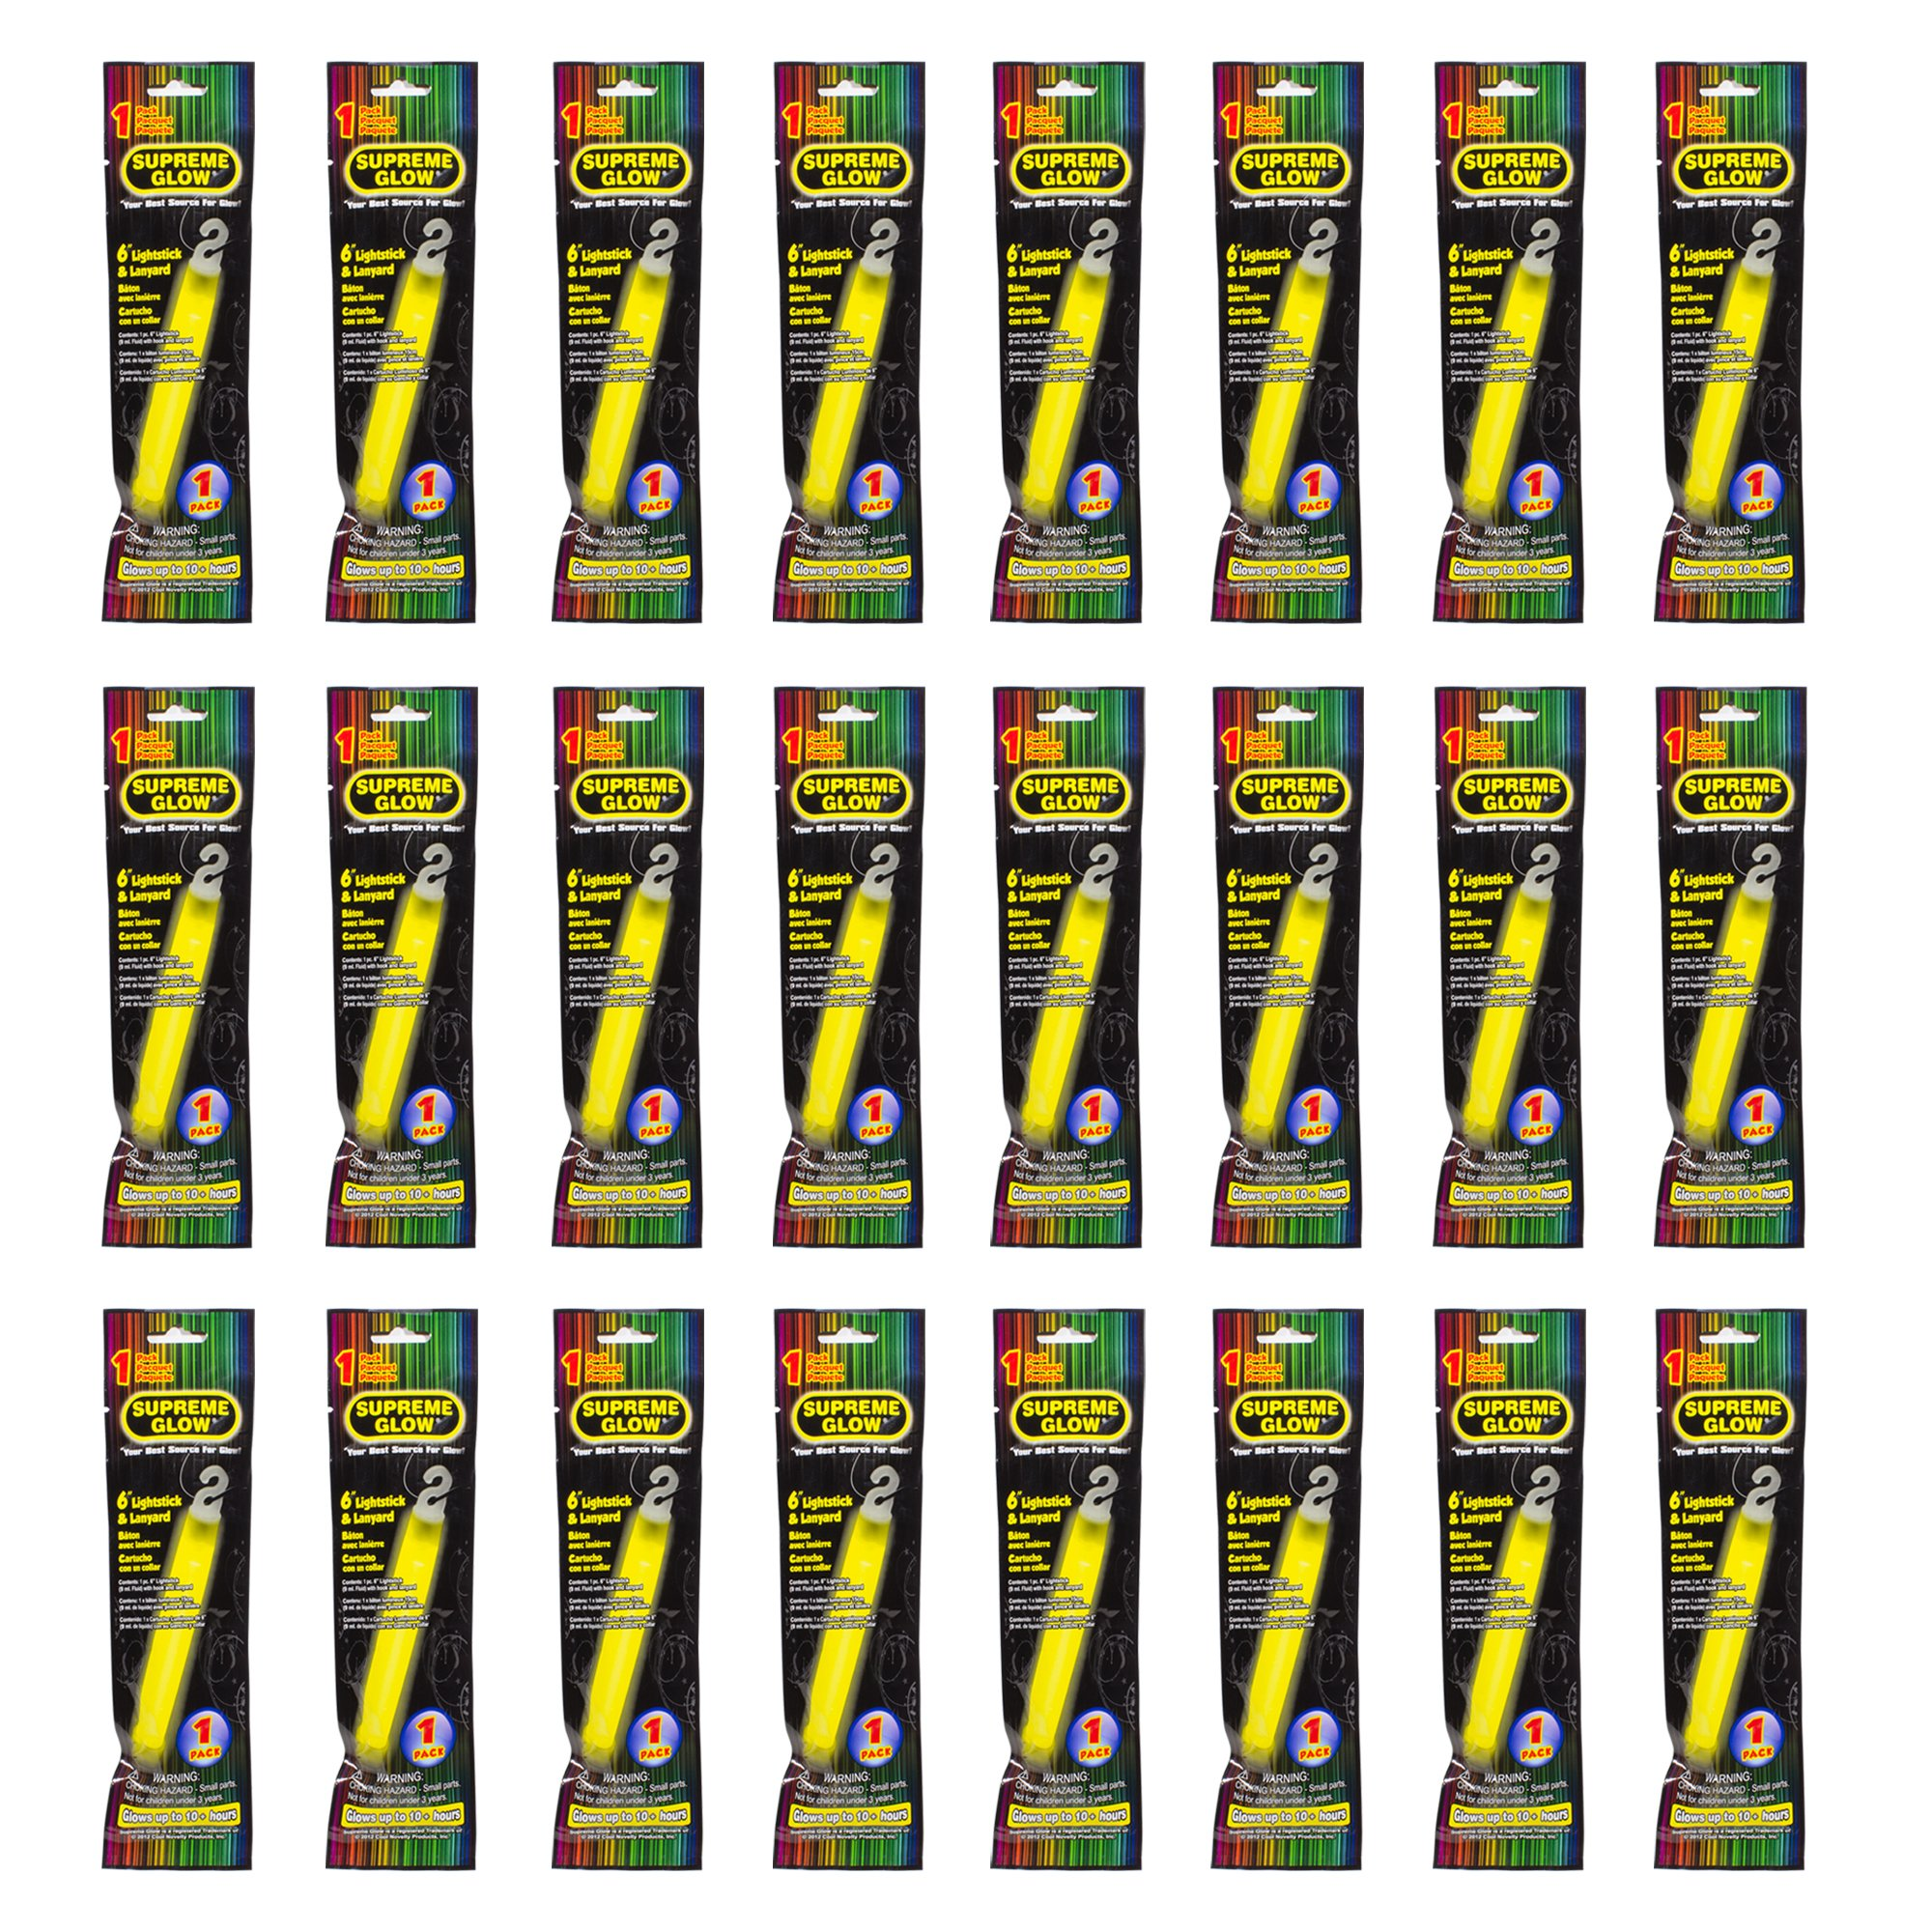 Industrial Grade 12 hour Illumination Emergency Safety Chemical Light Glow Sticks (24 Pack)